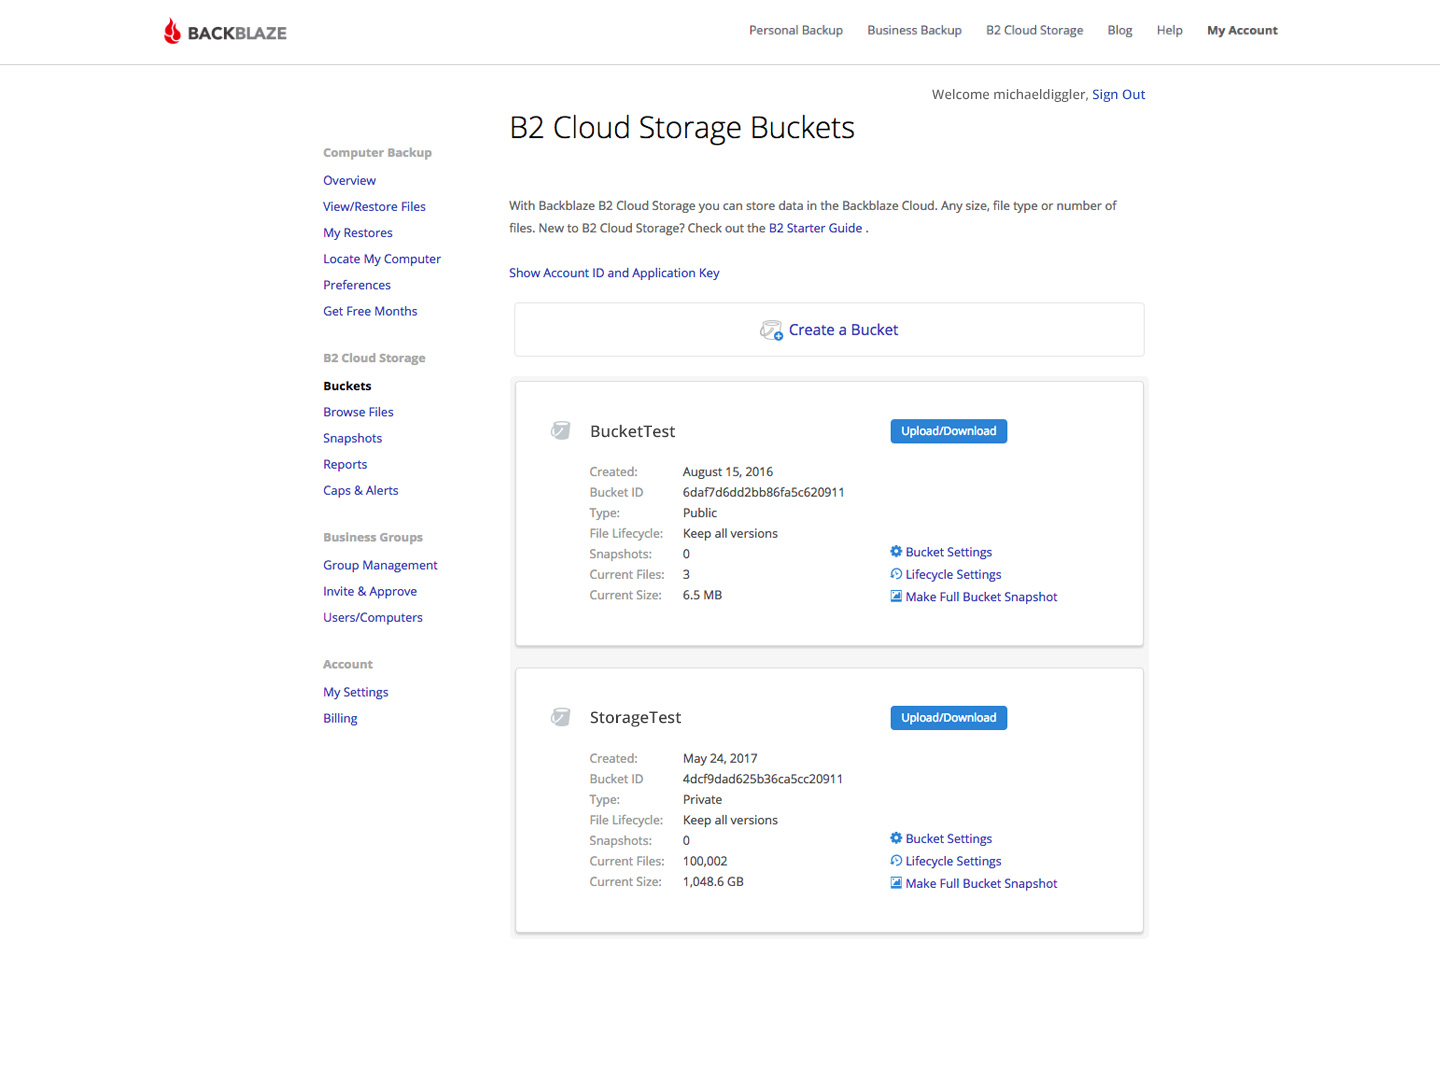 B2 Cloud Storage Buckets screenshot